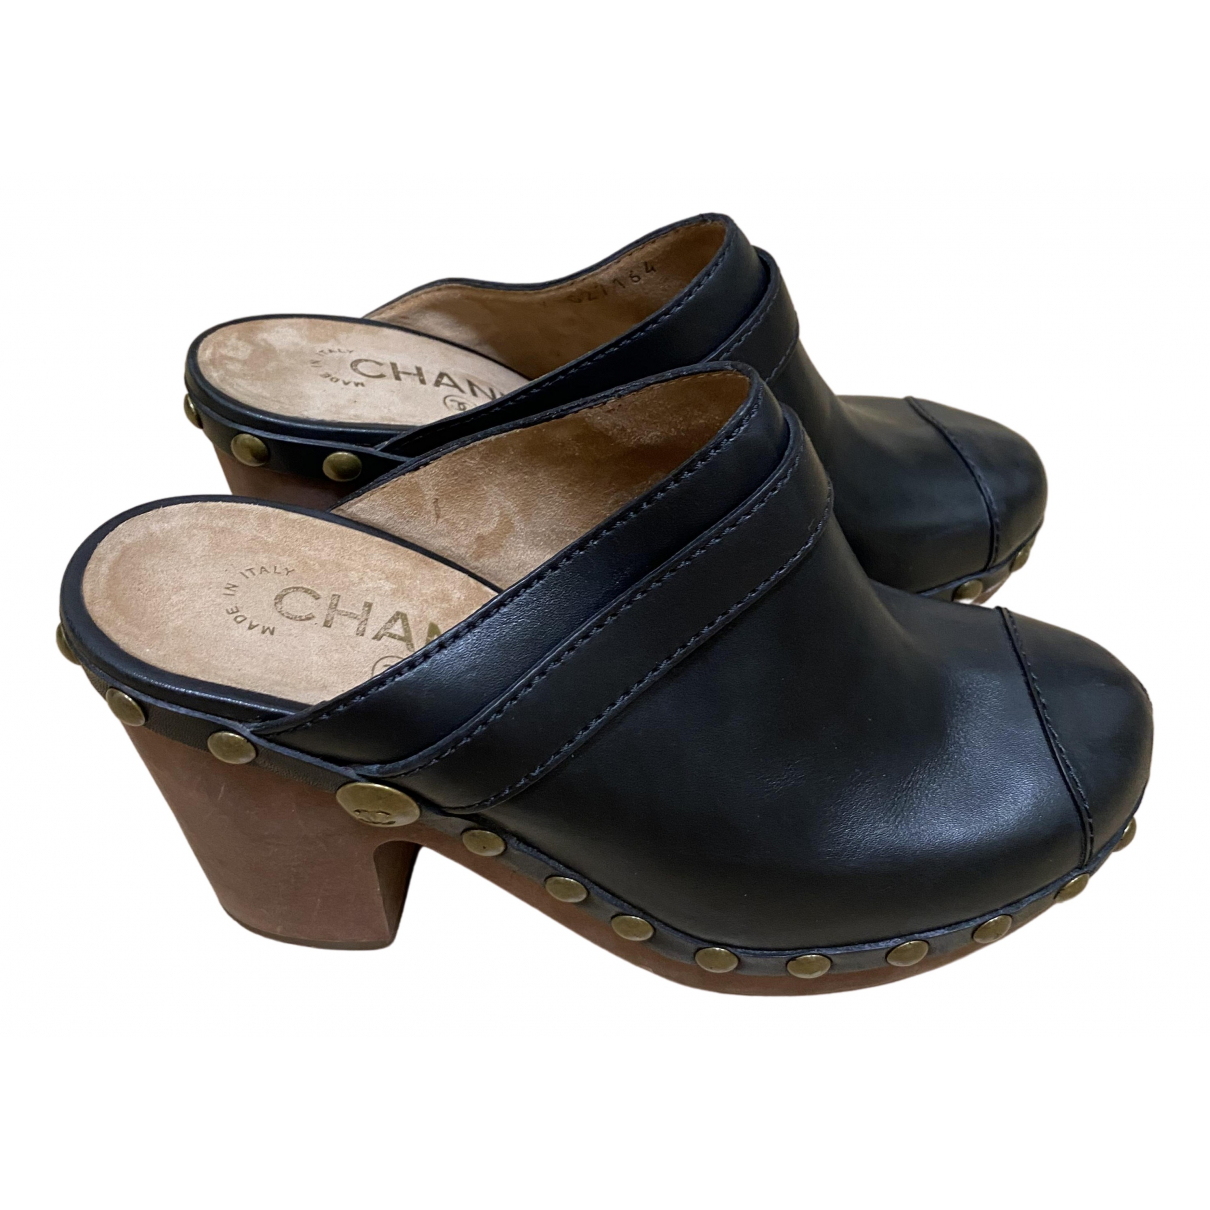 Chanel \N Black Leather Mules & Clogs for Women 37.5 IT